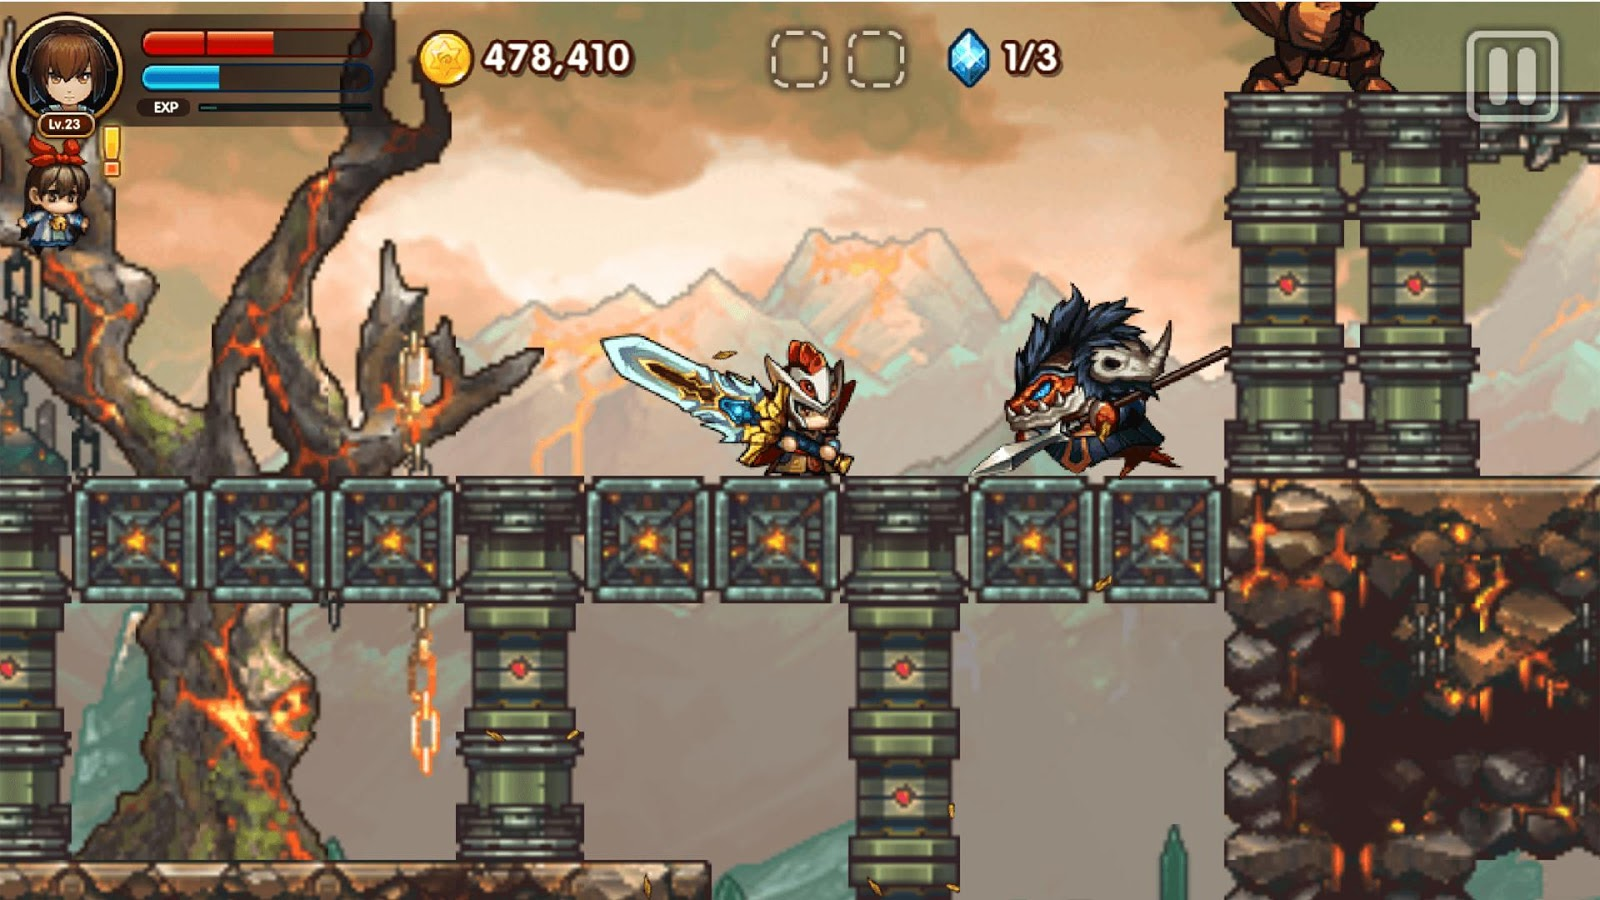 The East New World Screenshot 2